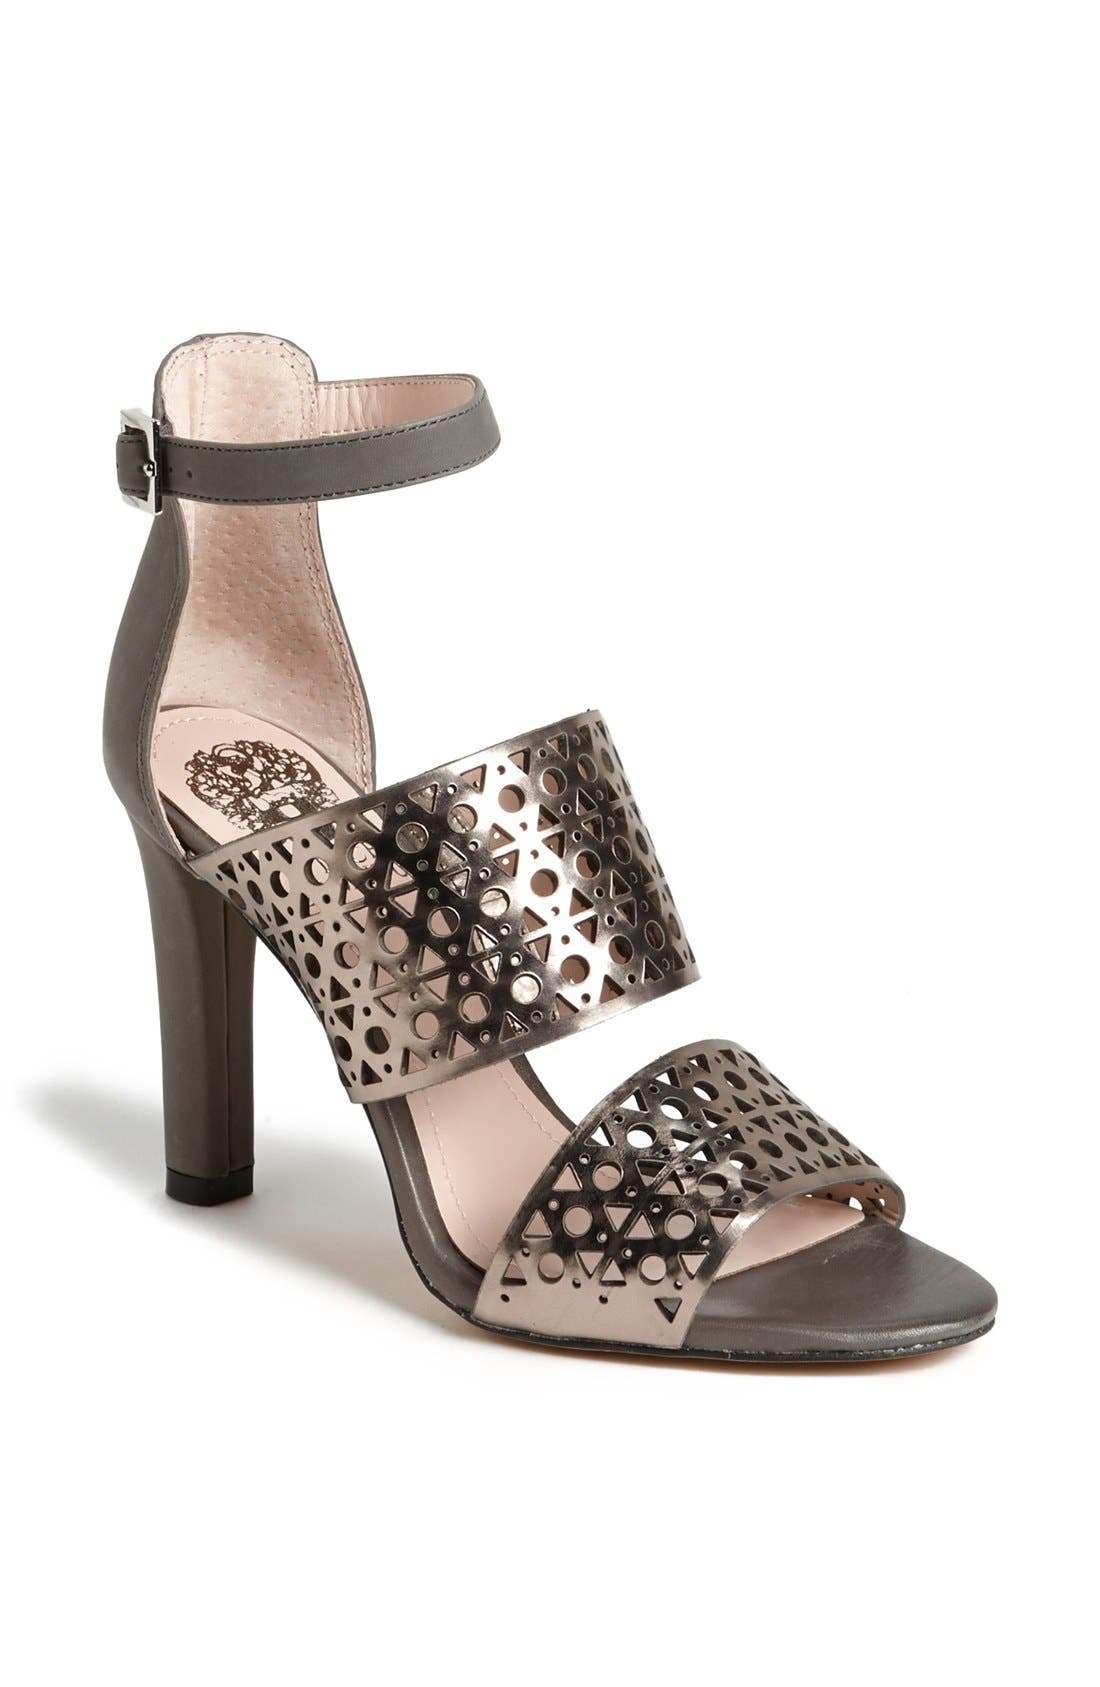 Alternate Image 1 Selected - Vince Camuto 'Okeli' Perforated Ankle Strap Sandal